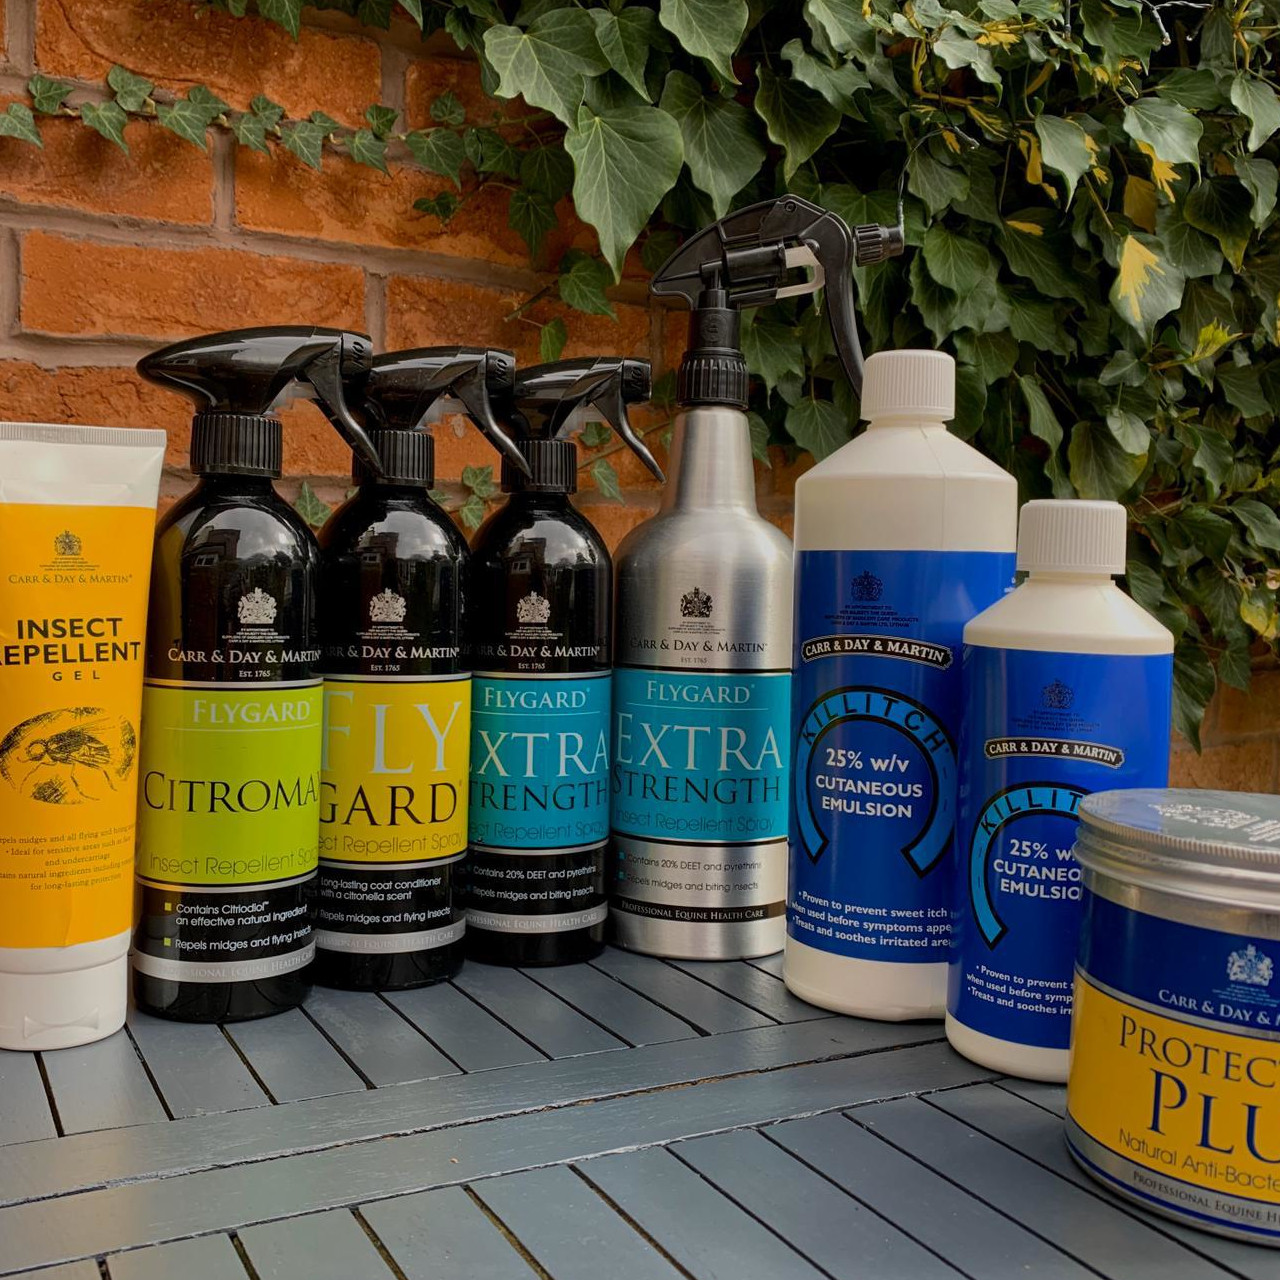 Fly Spray & Repellent – What's inside?